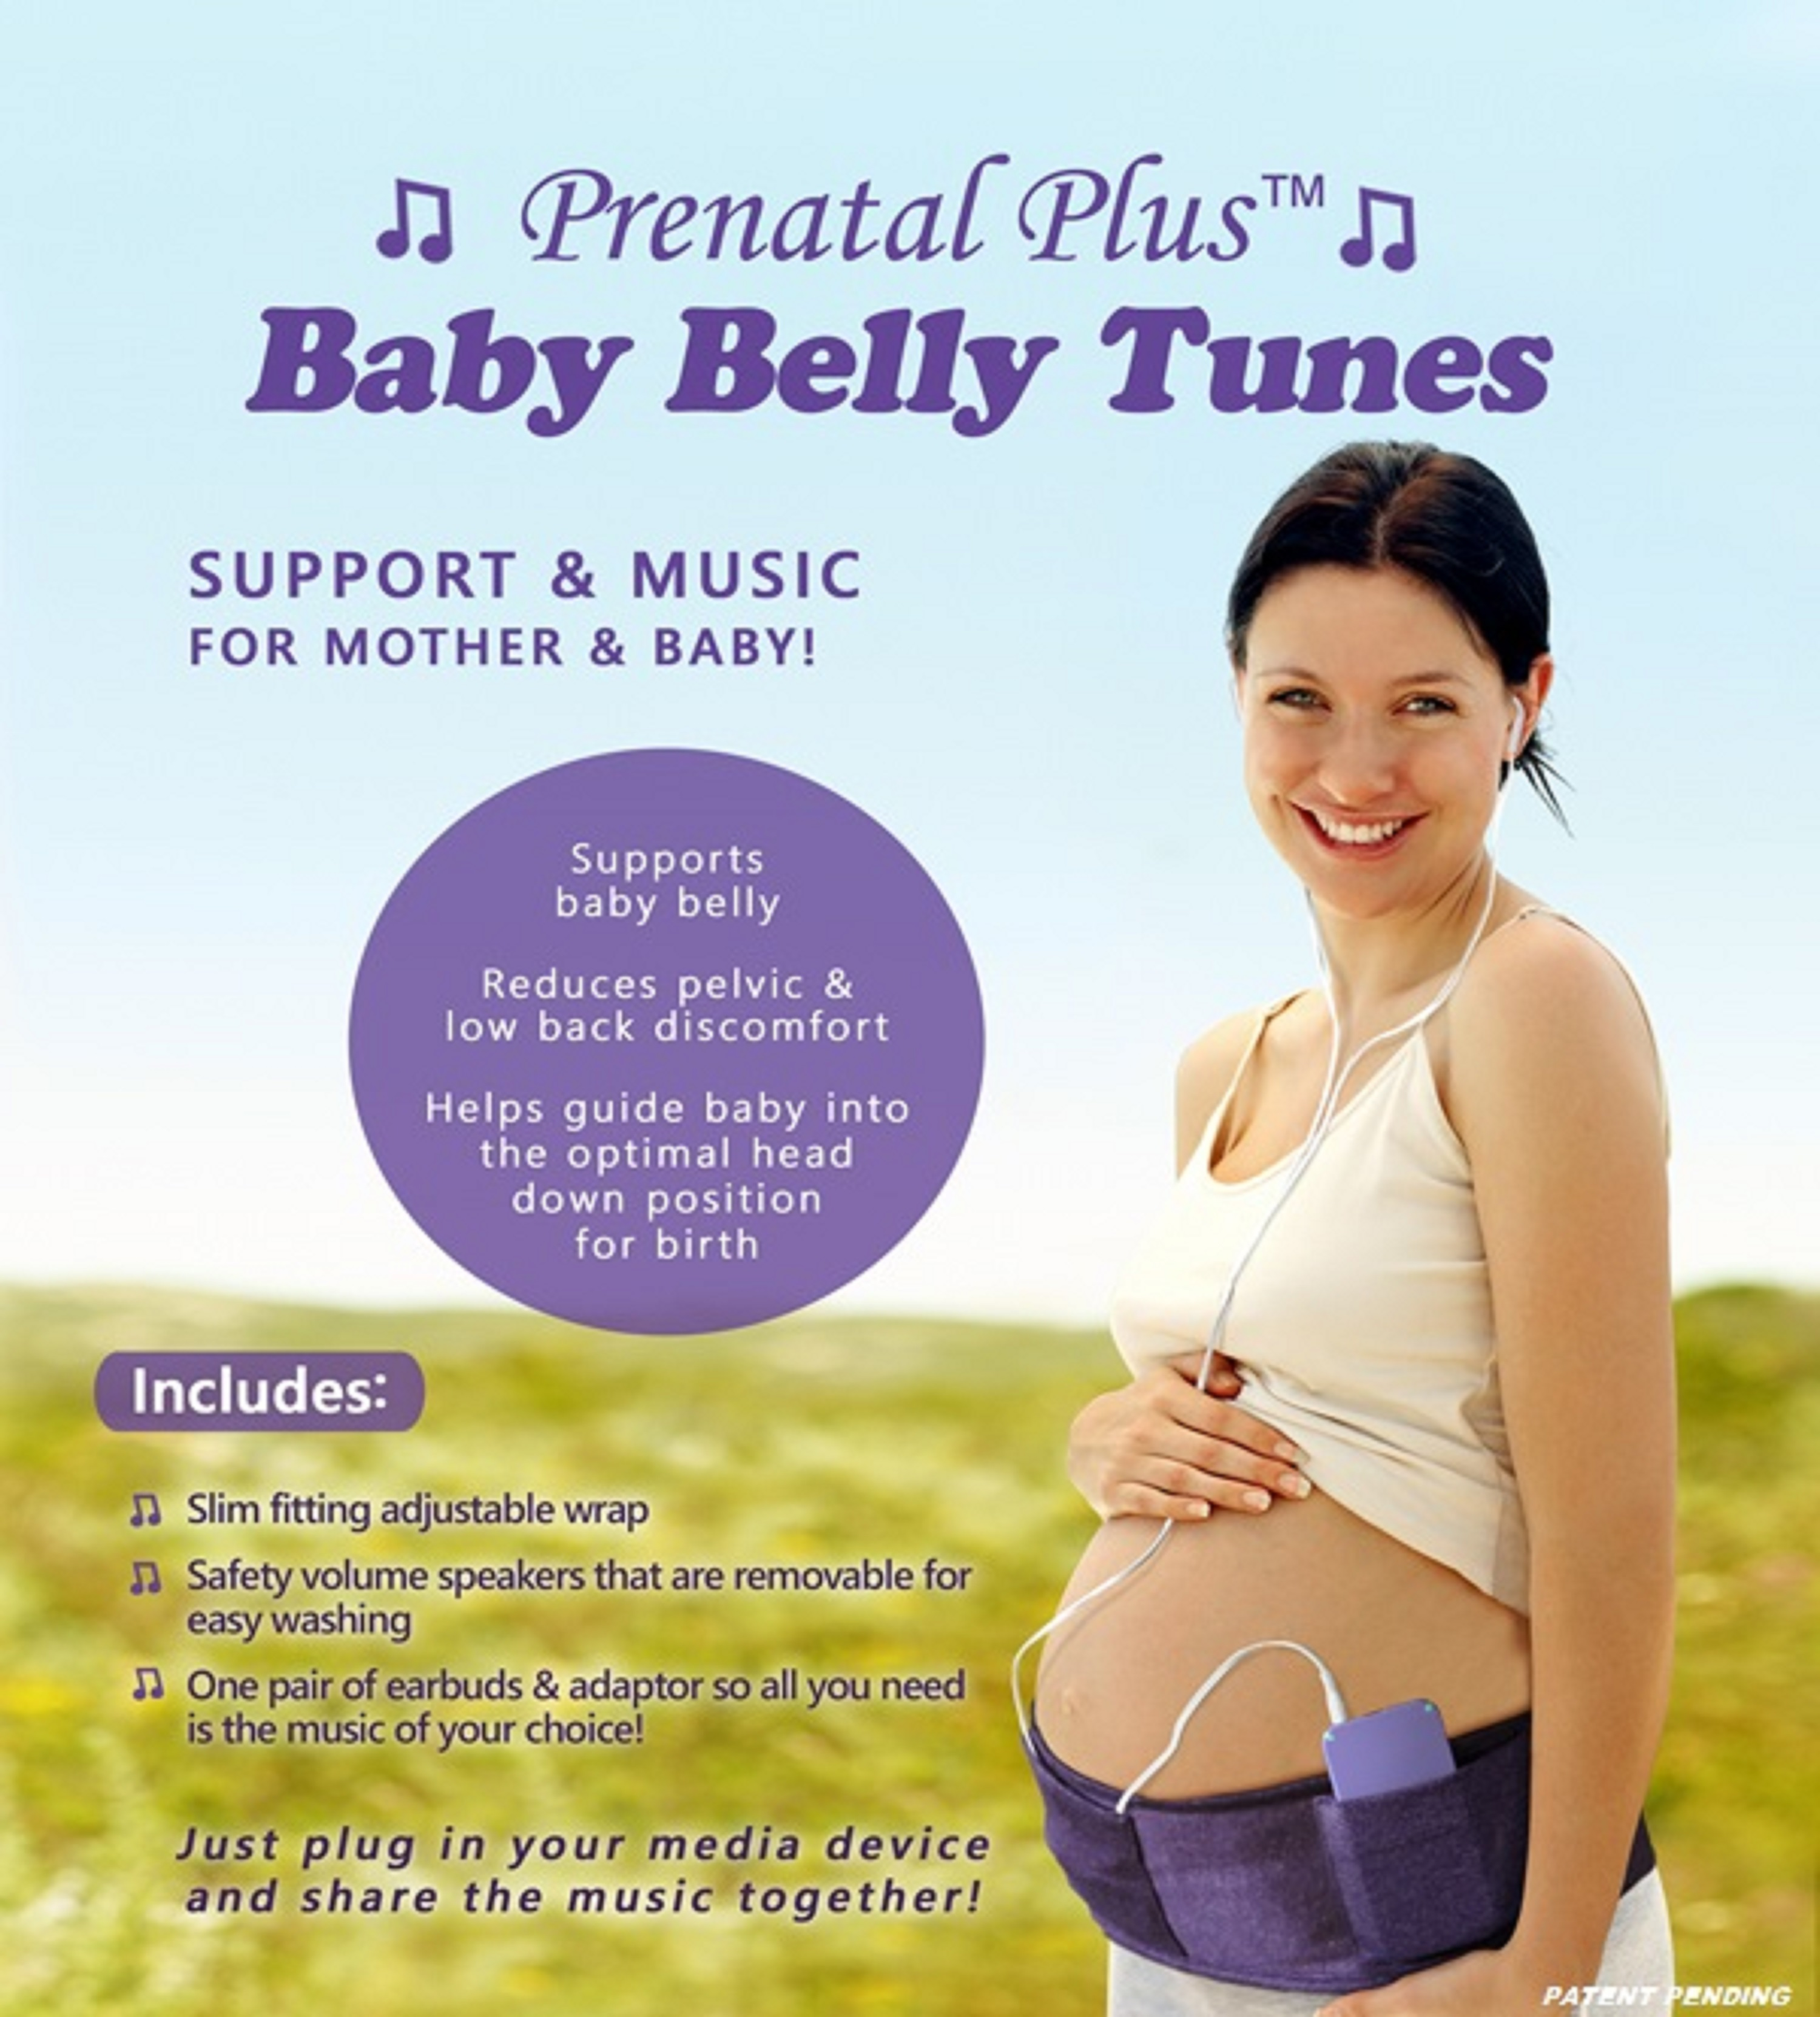 Baby Belly Tunes | Holistic South Pregnancy & Birth Center